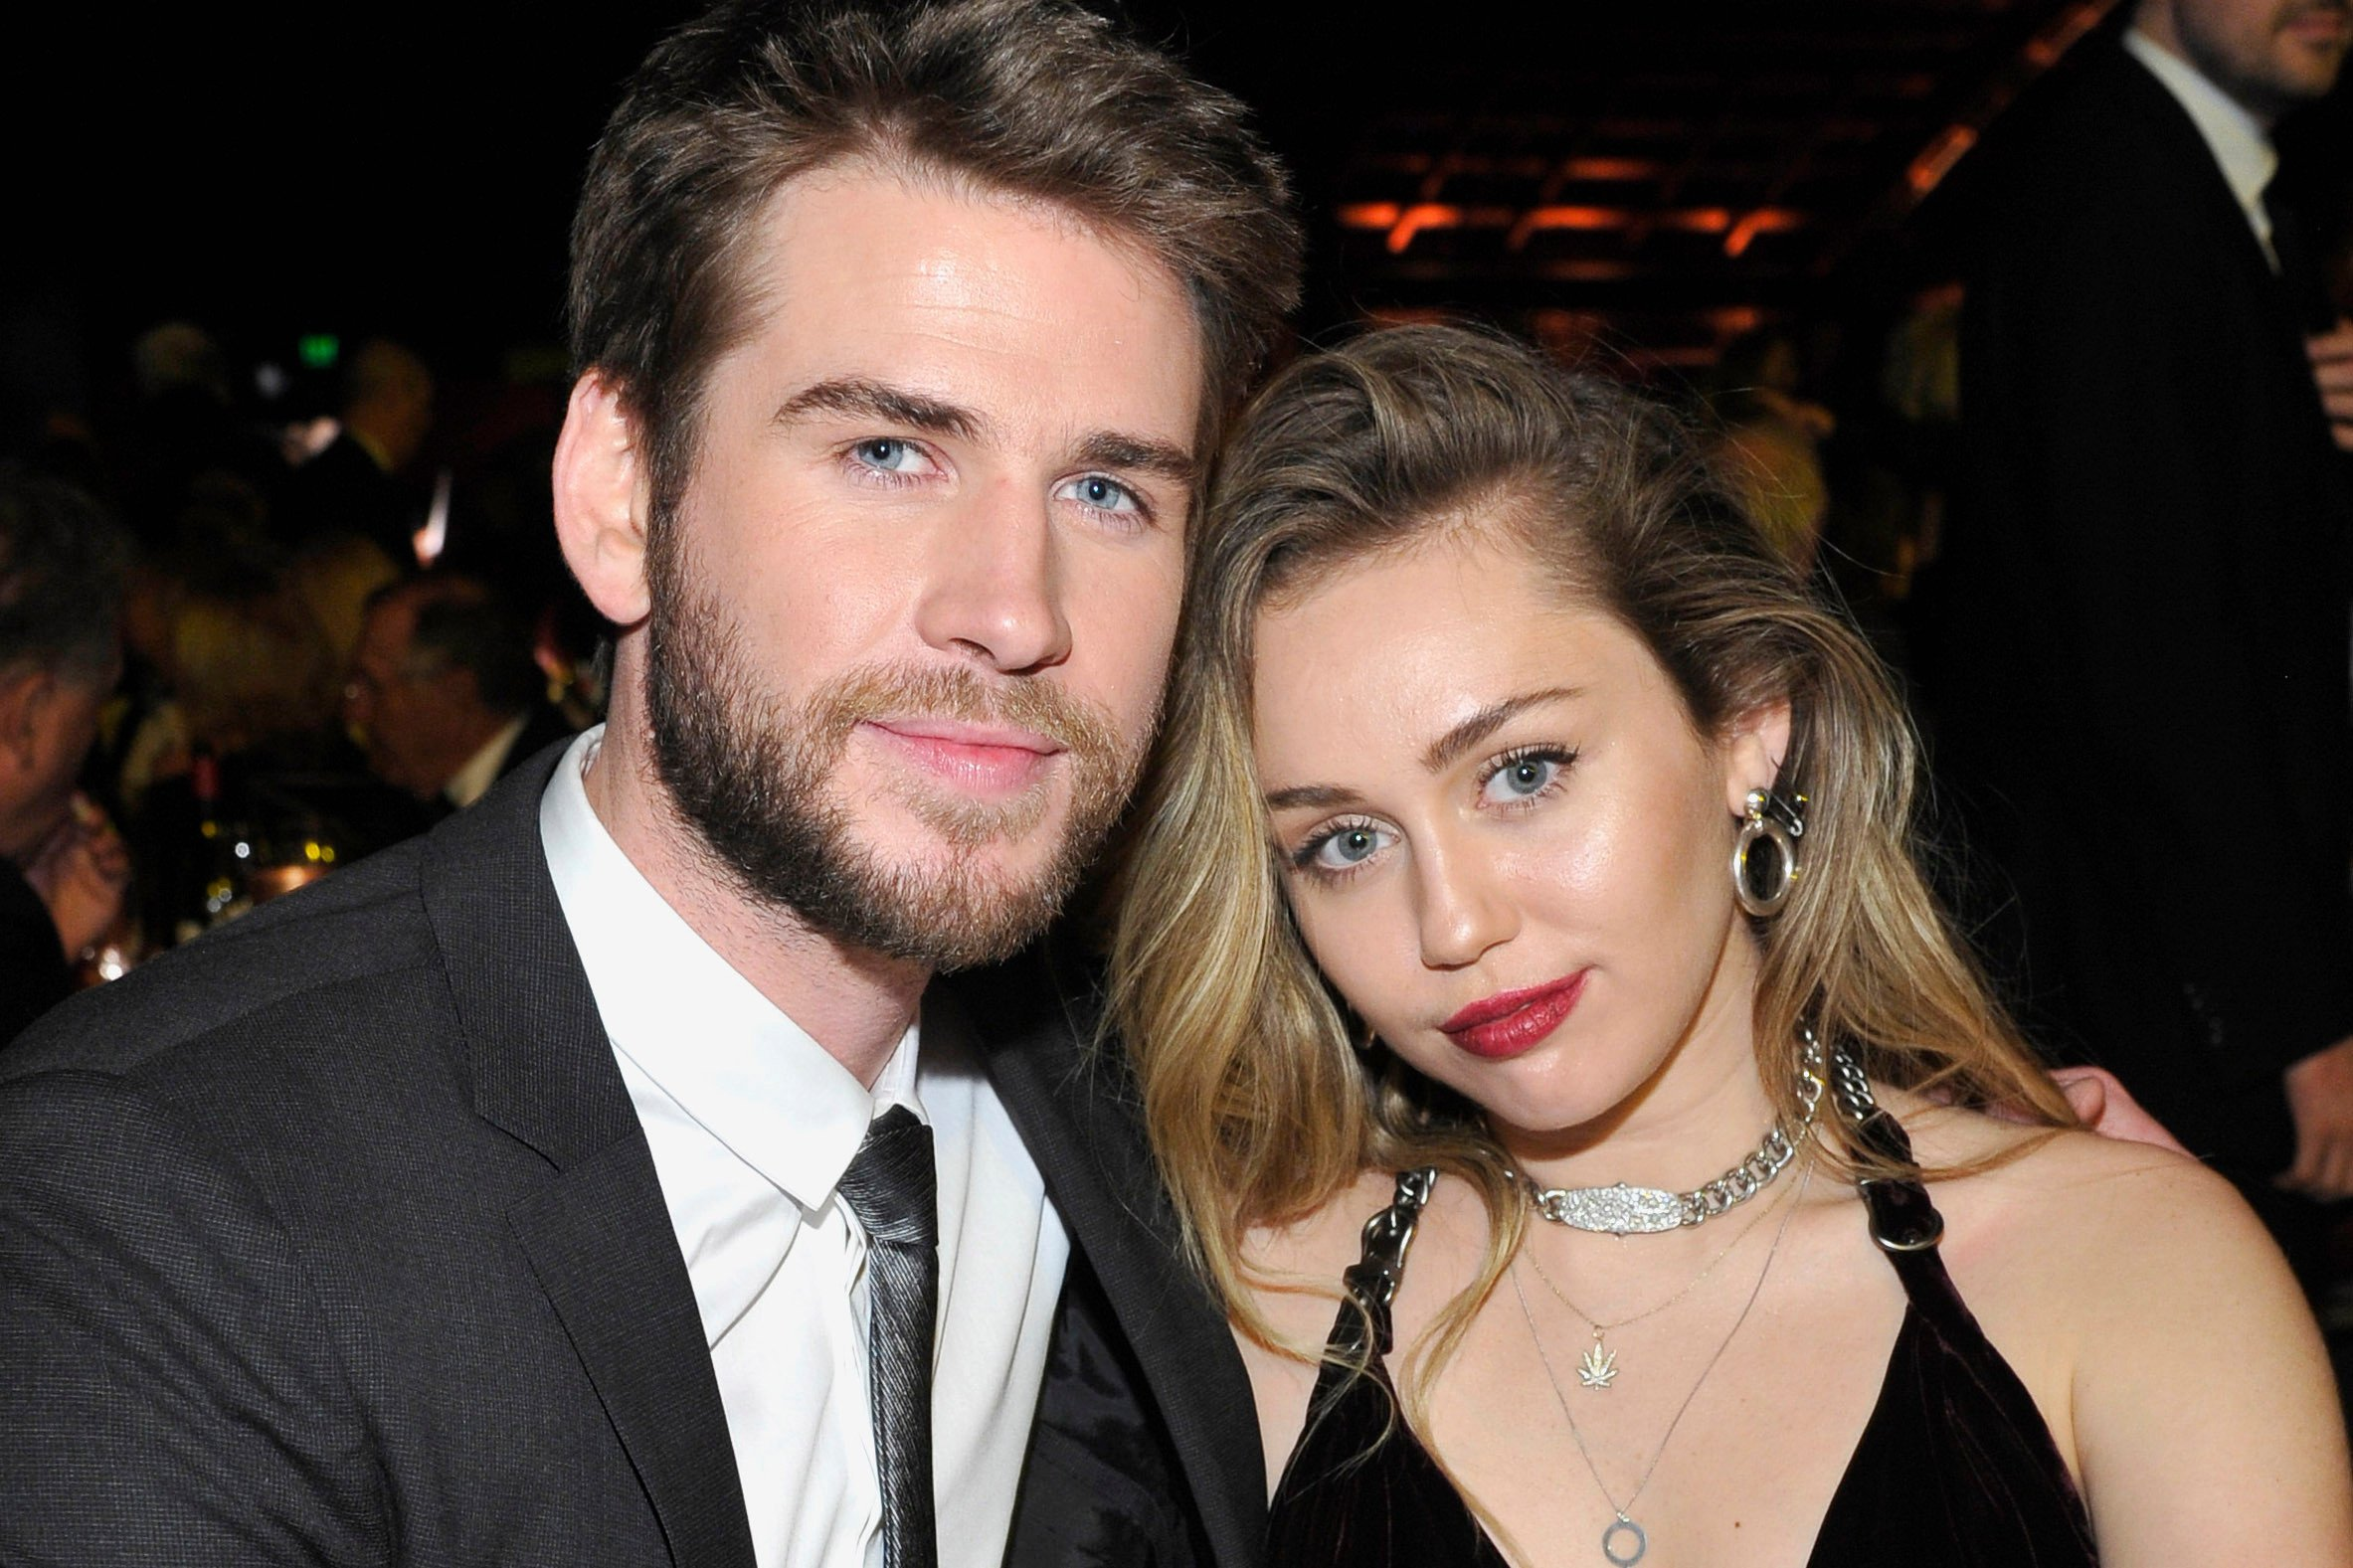 Miley Cyrus on being 'a queer person in a hetero relationship' with Liam Hemsworth